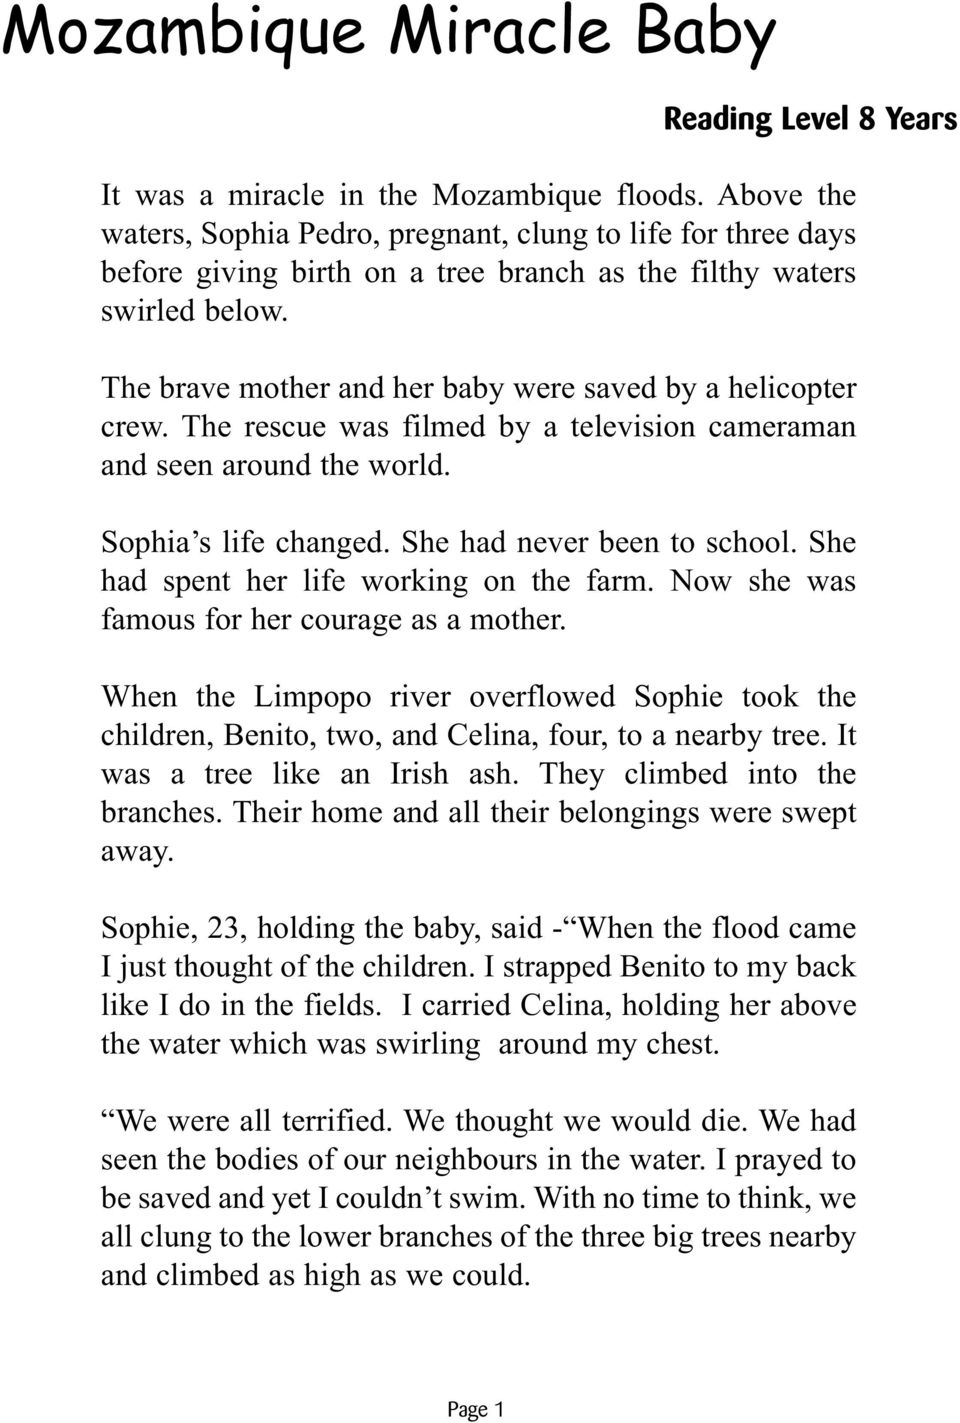 The brave mother and her baby were saved by a helicopter crew. The rescue was filmed by a television cameraman and seen around the world. Sophia s life changed. She had never been to school.